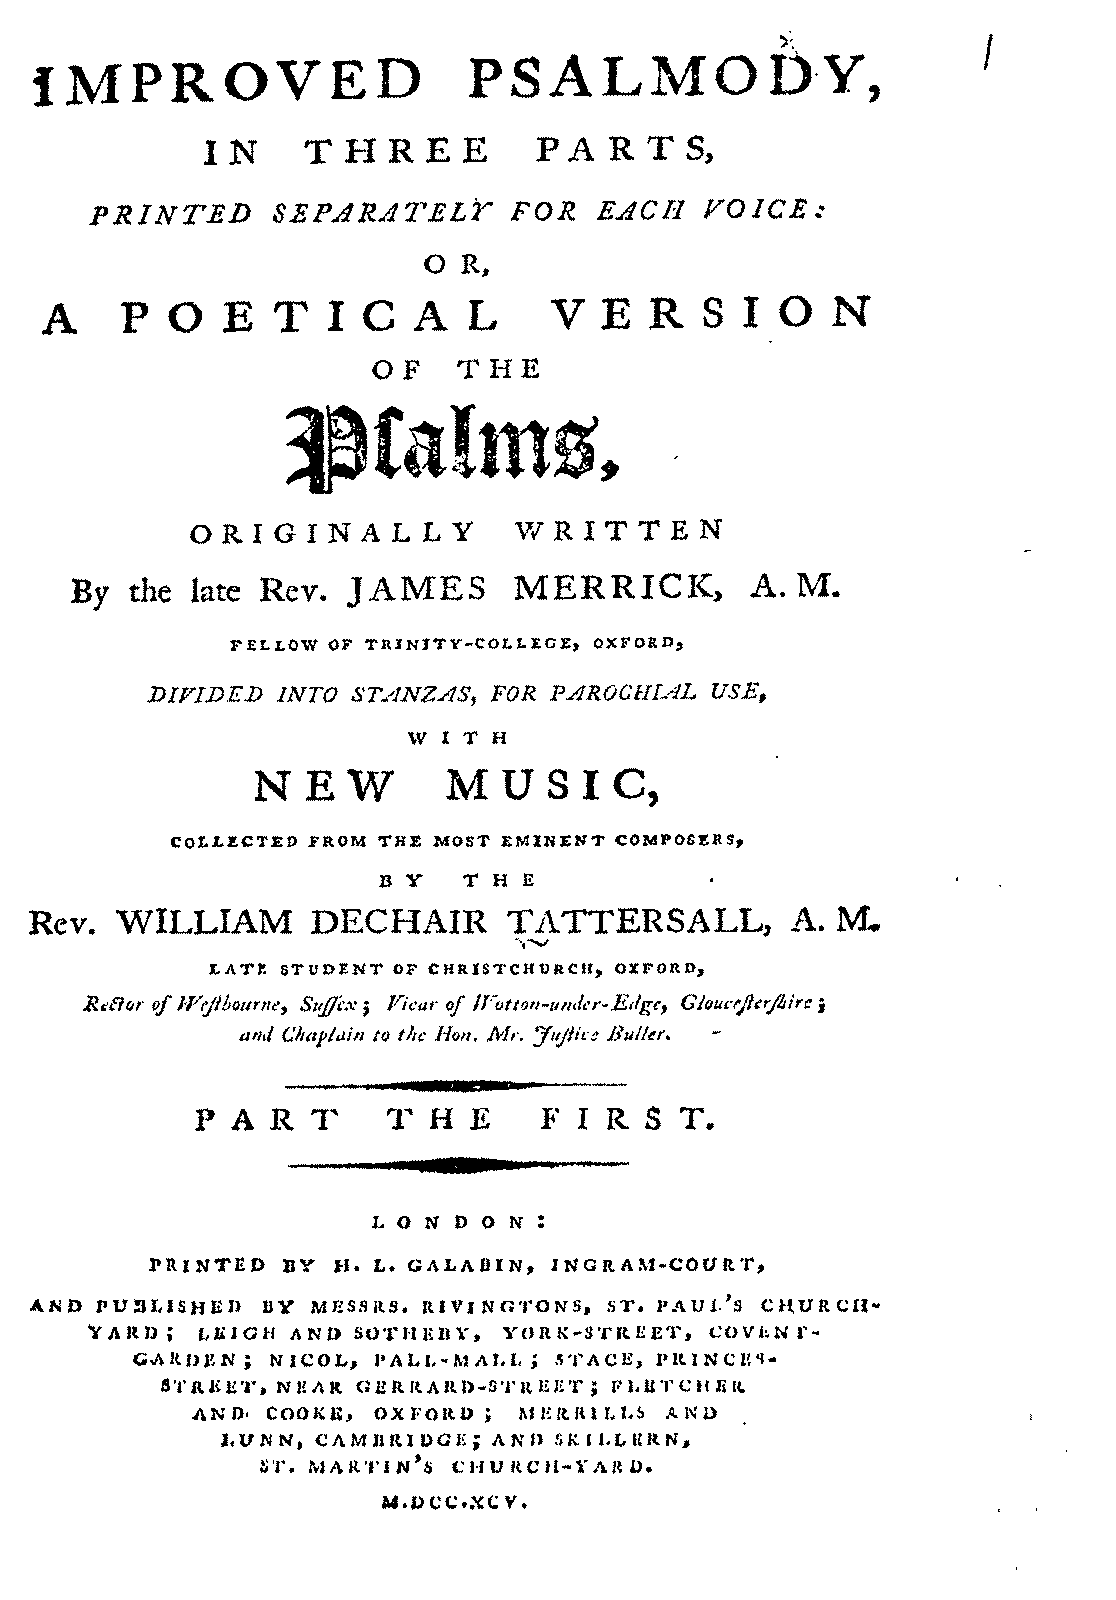 PMLP146225-Tattershall Improved psalmody 1795 part1.1.pdf